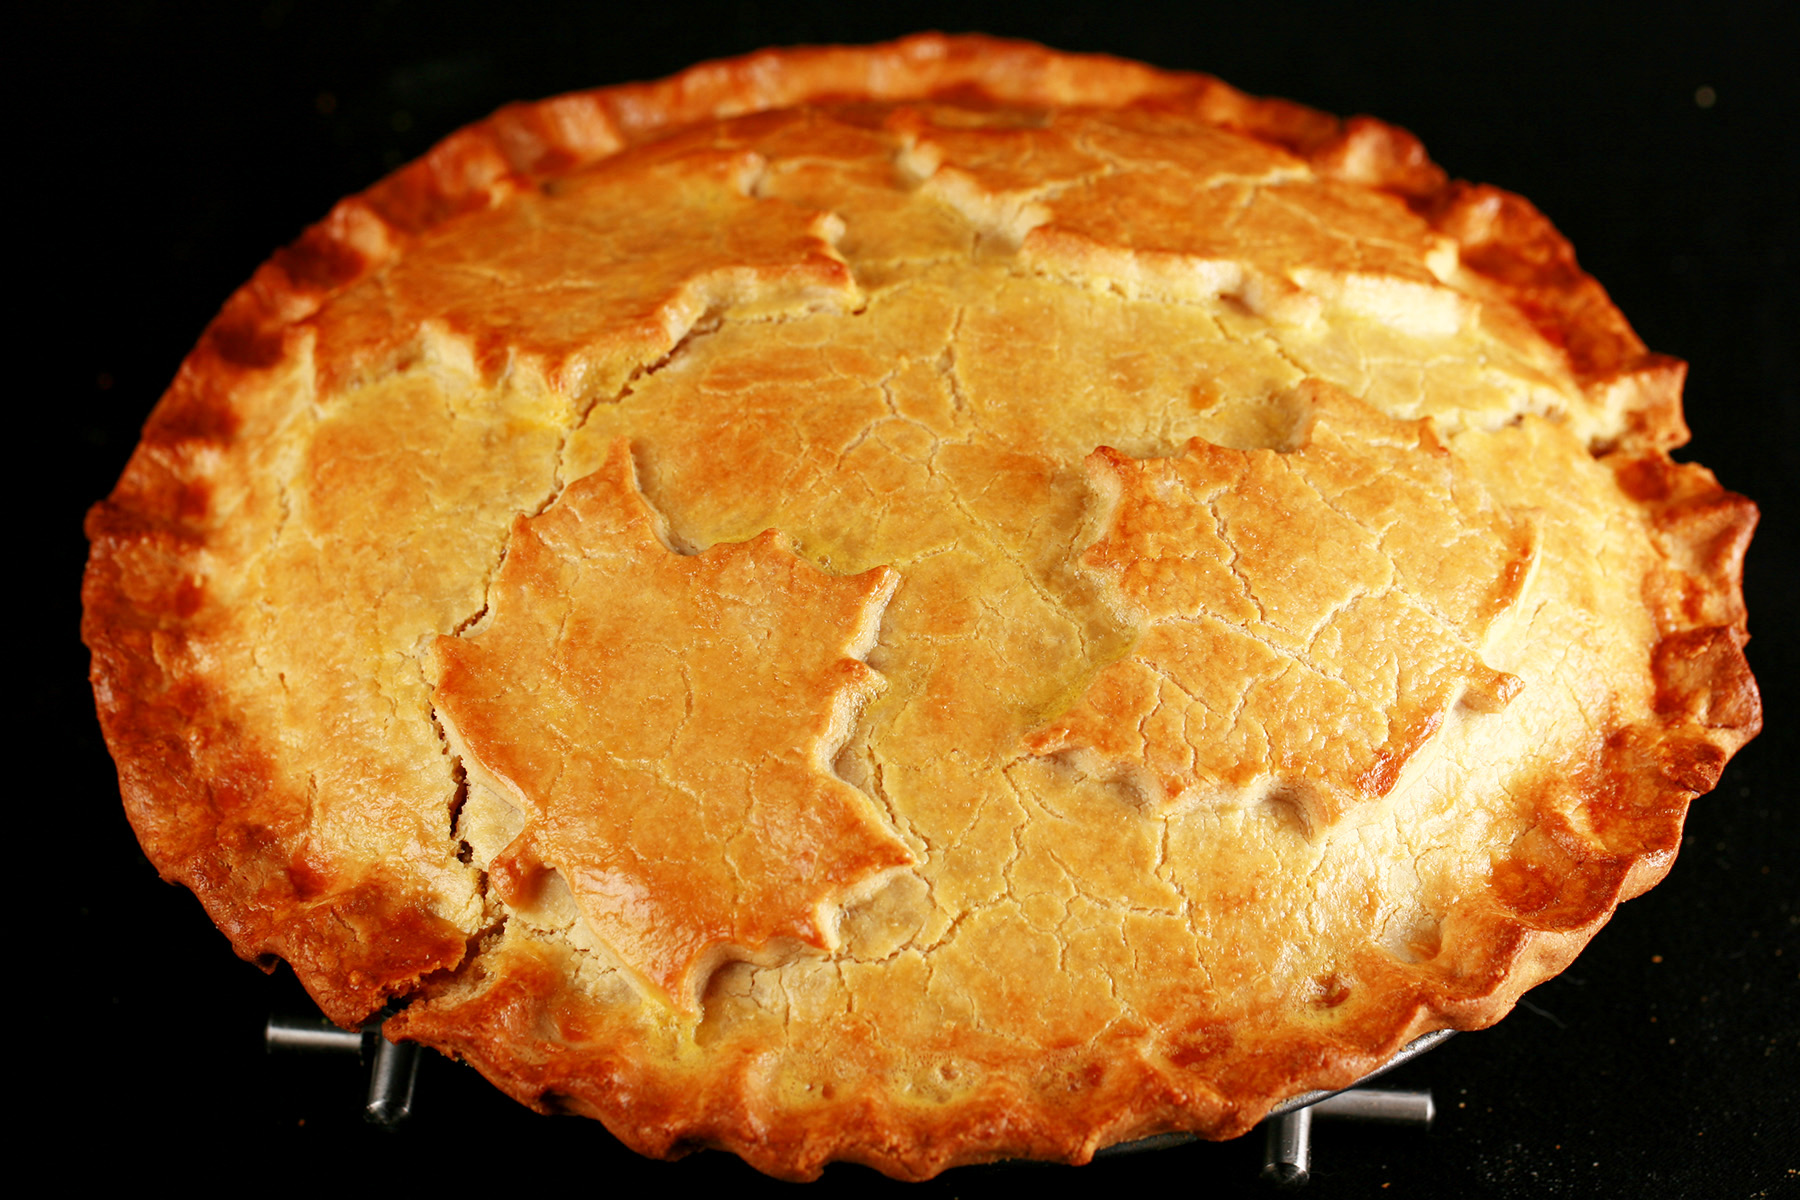 A golden brown gluten-free tourtiere meat pie, with a maple leaf design on top.